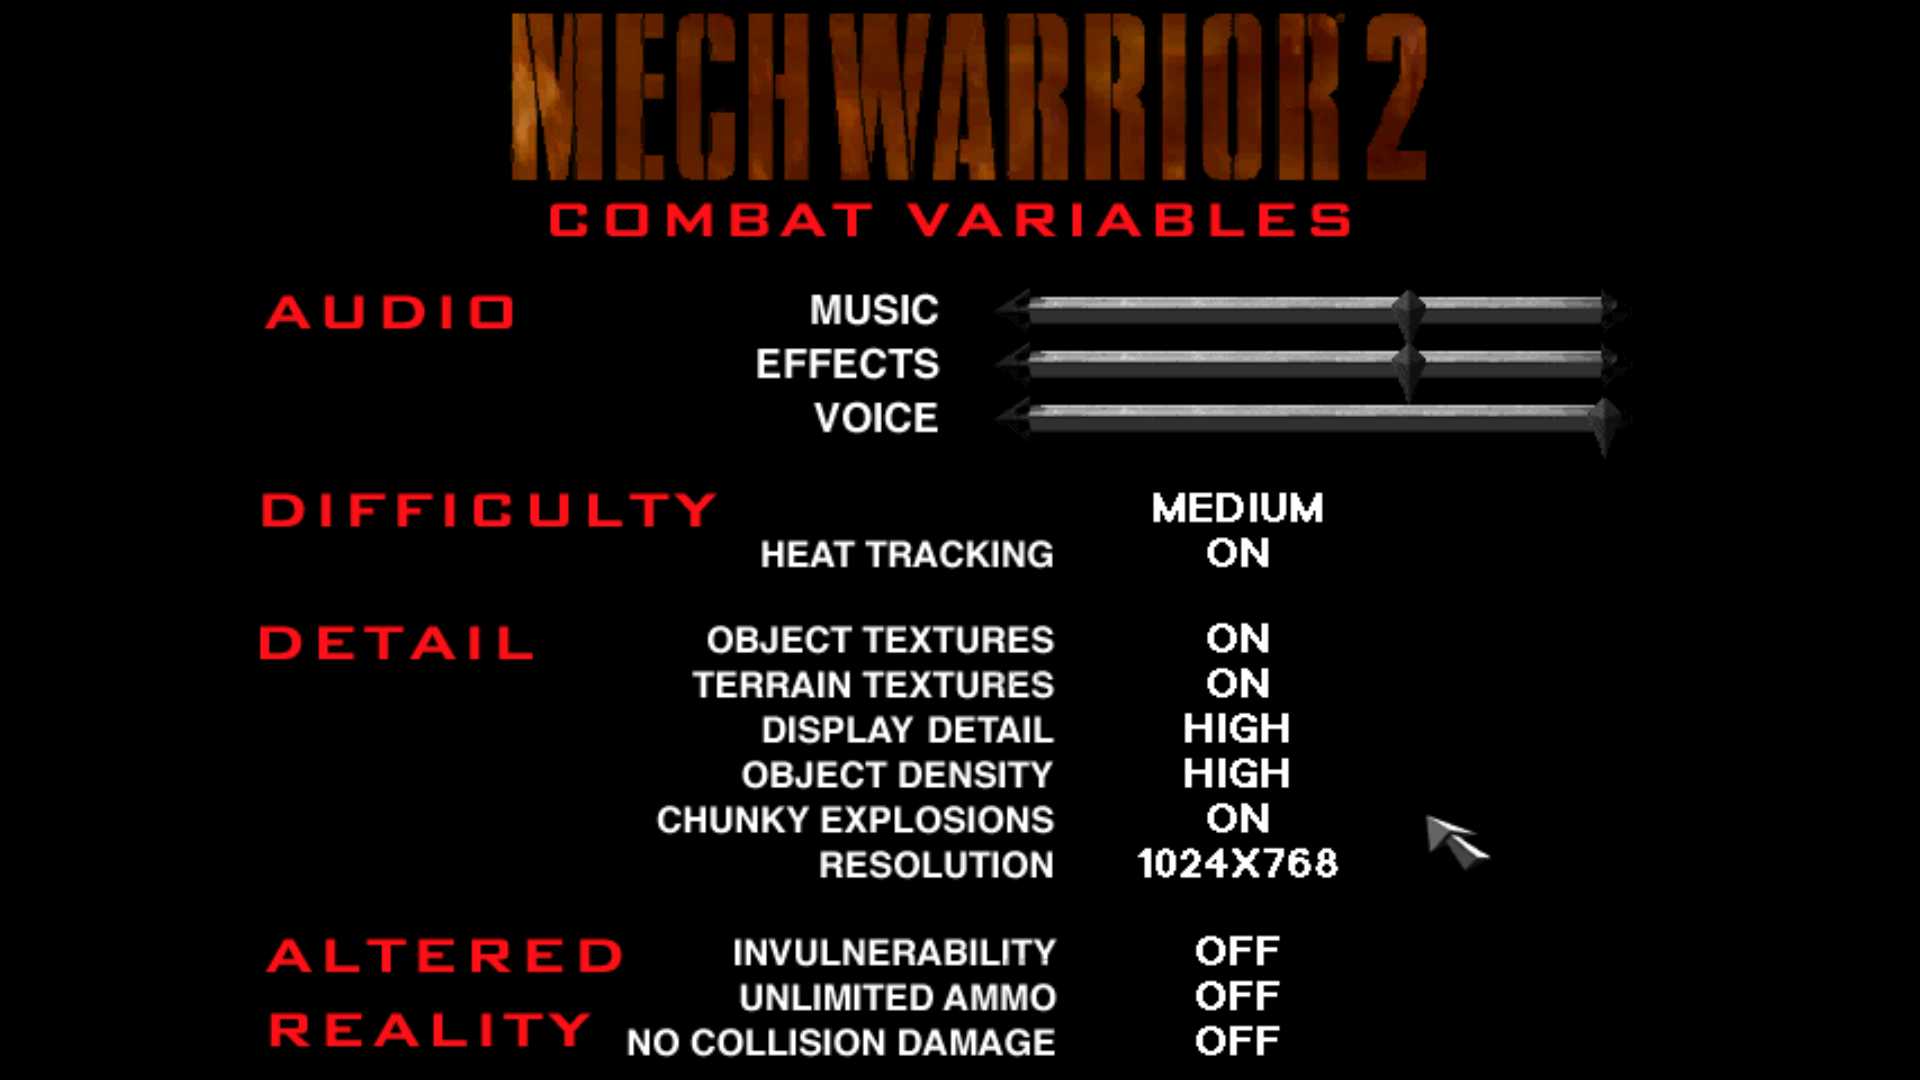 Figure 2 - Combat variables for Mech Warrior 2 with build-in cheat options